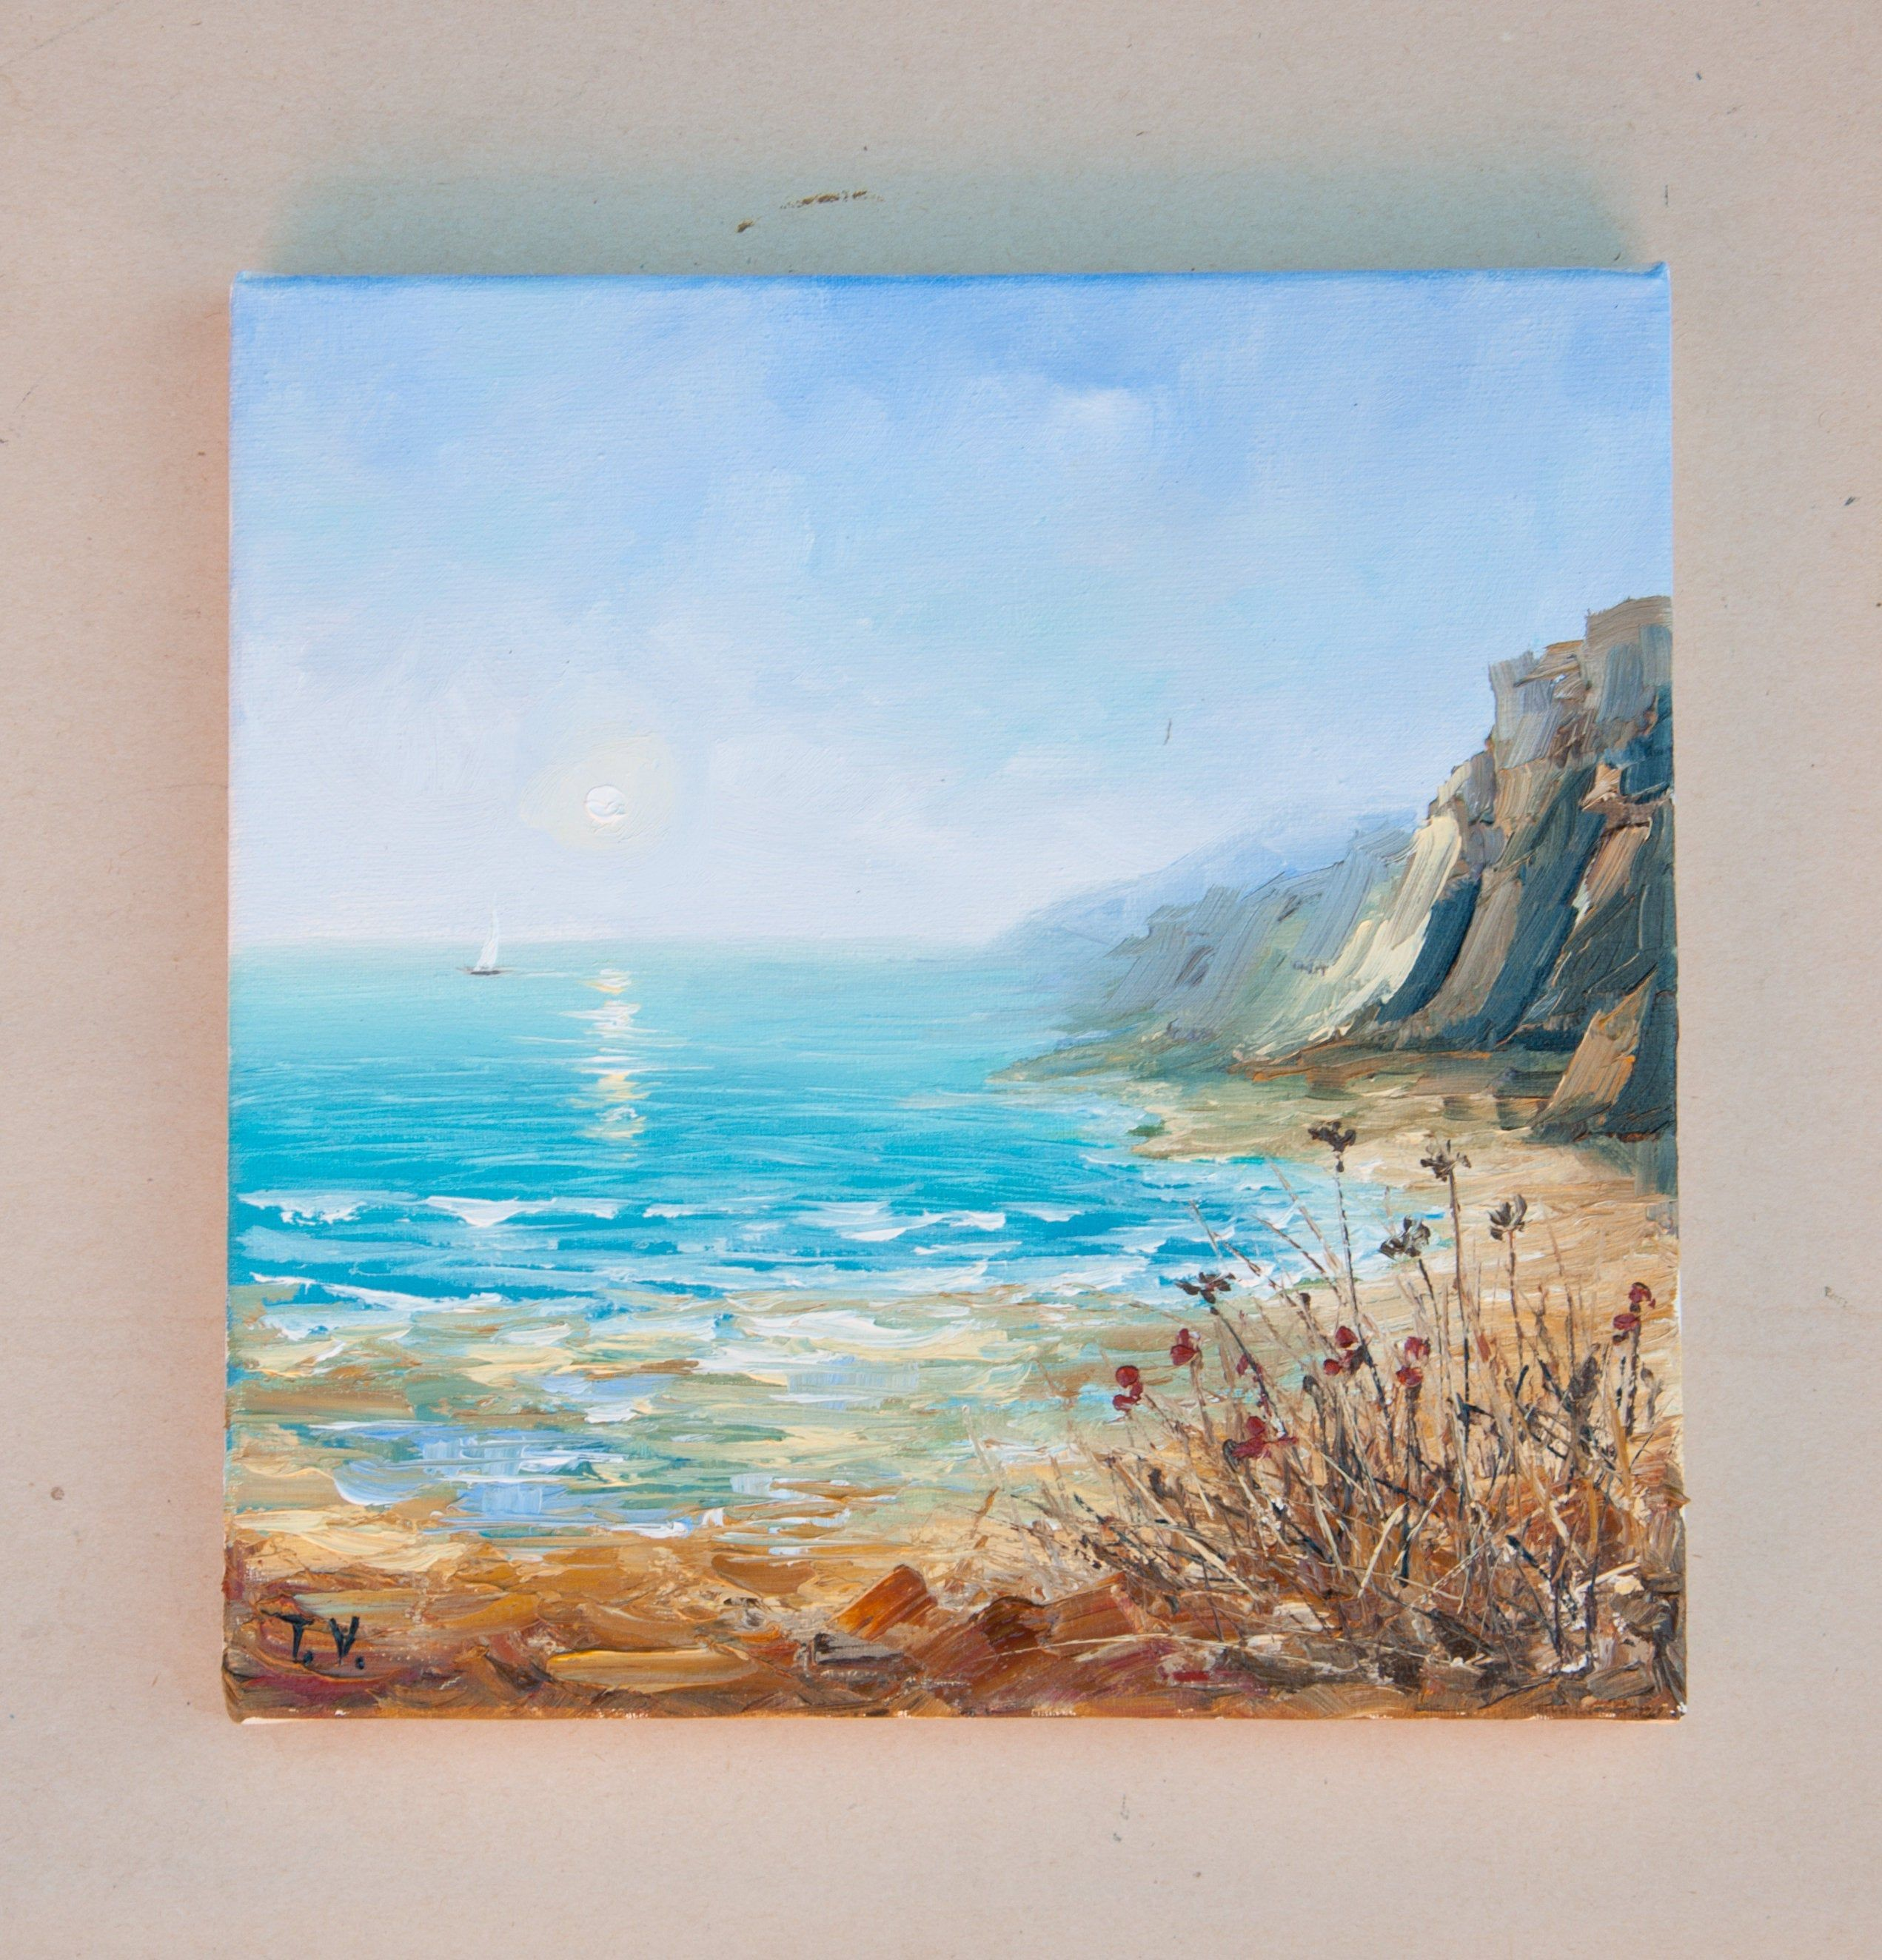 Oil Painting Art On Canvas Ocean Seascape Water Landscape Small Painting Sky Blue Sea Mountains Nautical Scene Boa Ocean Painting Seascape Paintings Canvas Art